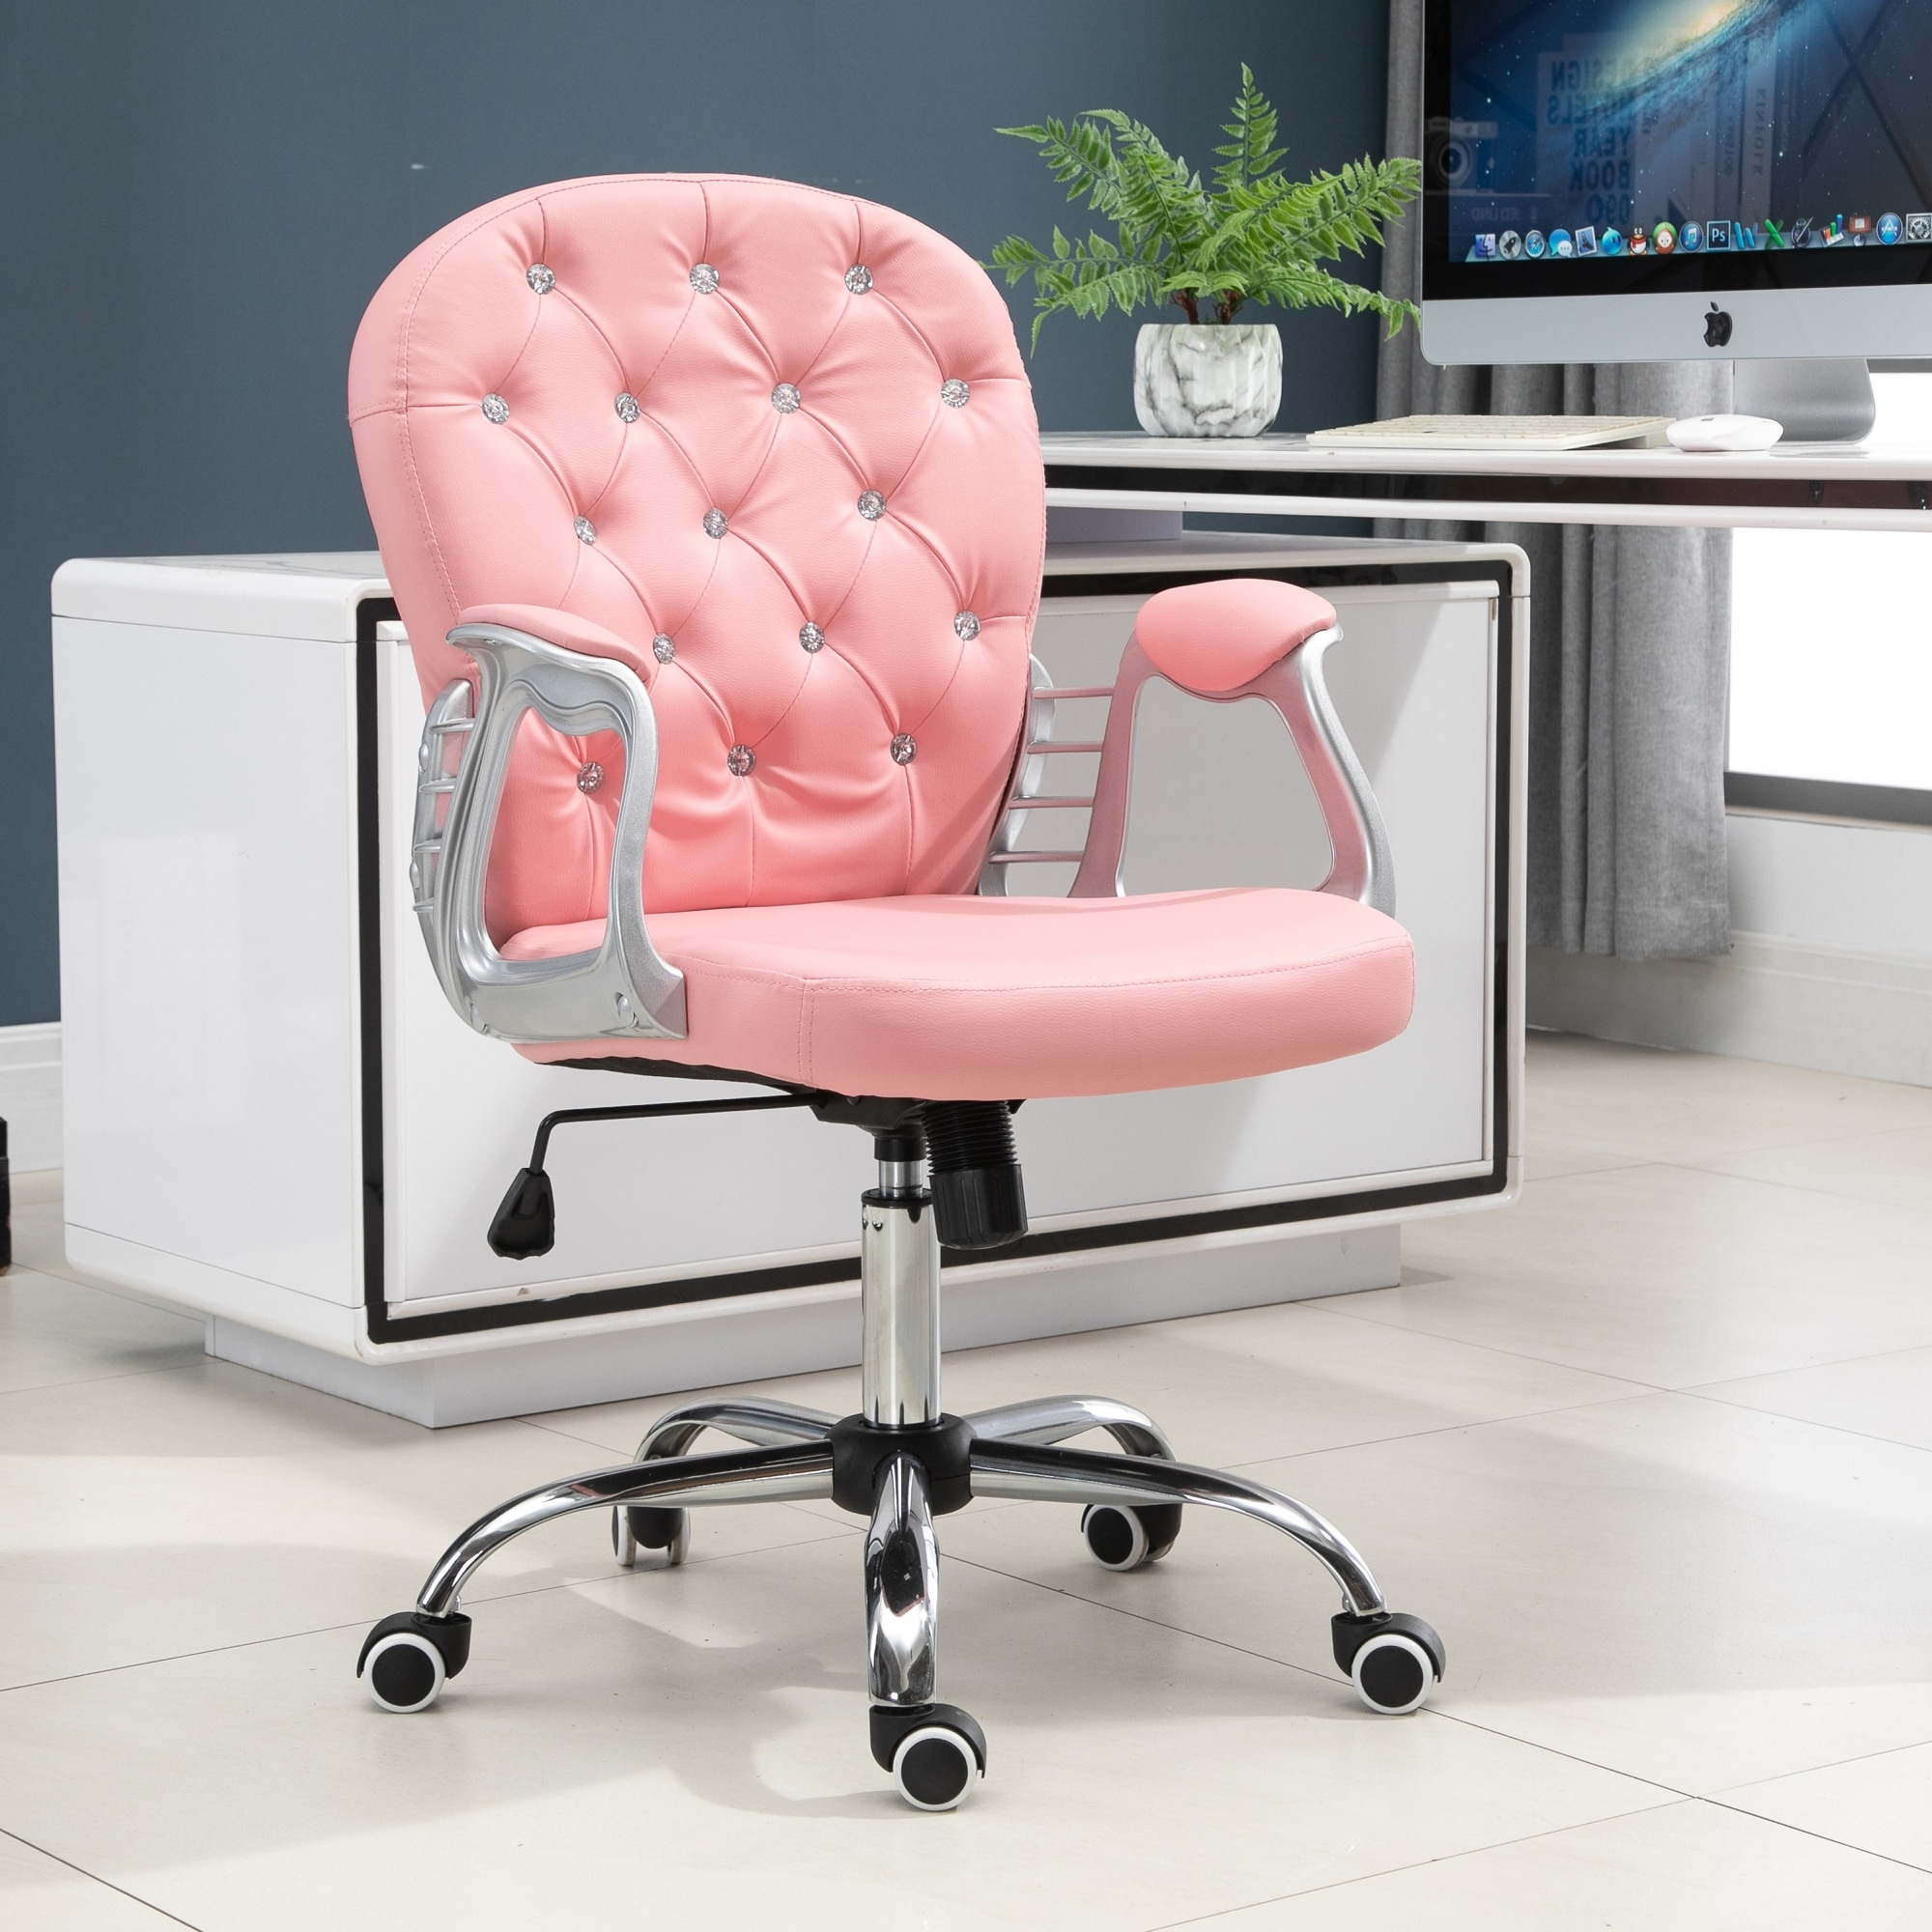 Vinsetto Vanity Middle Back Office Chair Tufted Backrest Swivel Rolling Wheels Task Chair With Height Adjustable Armrests Overstock 31629390